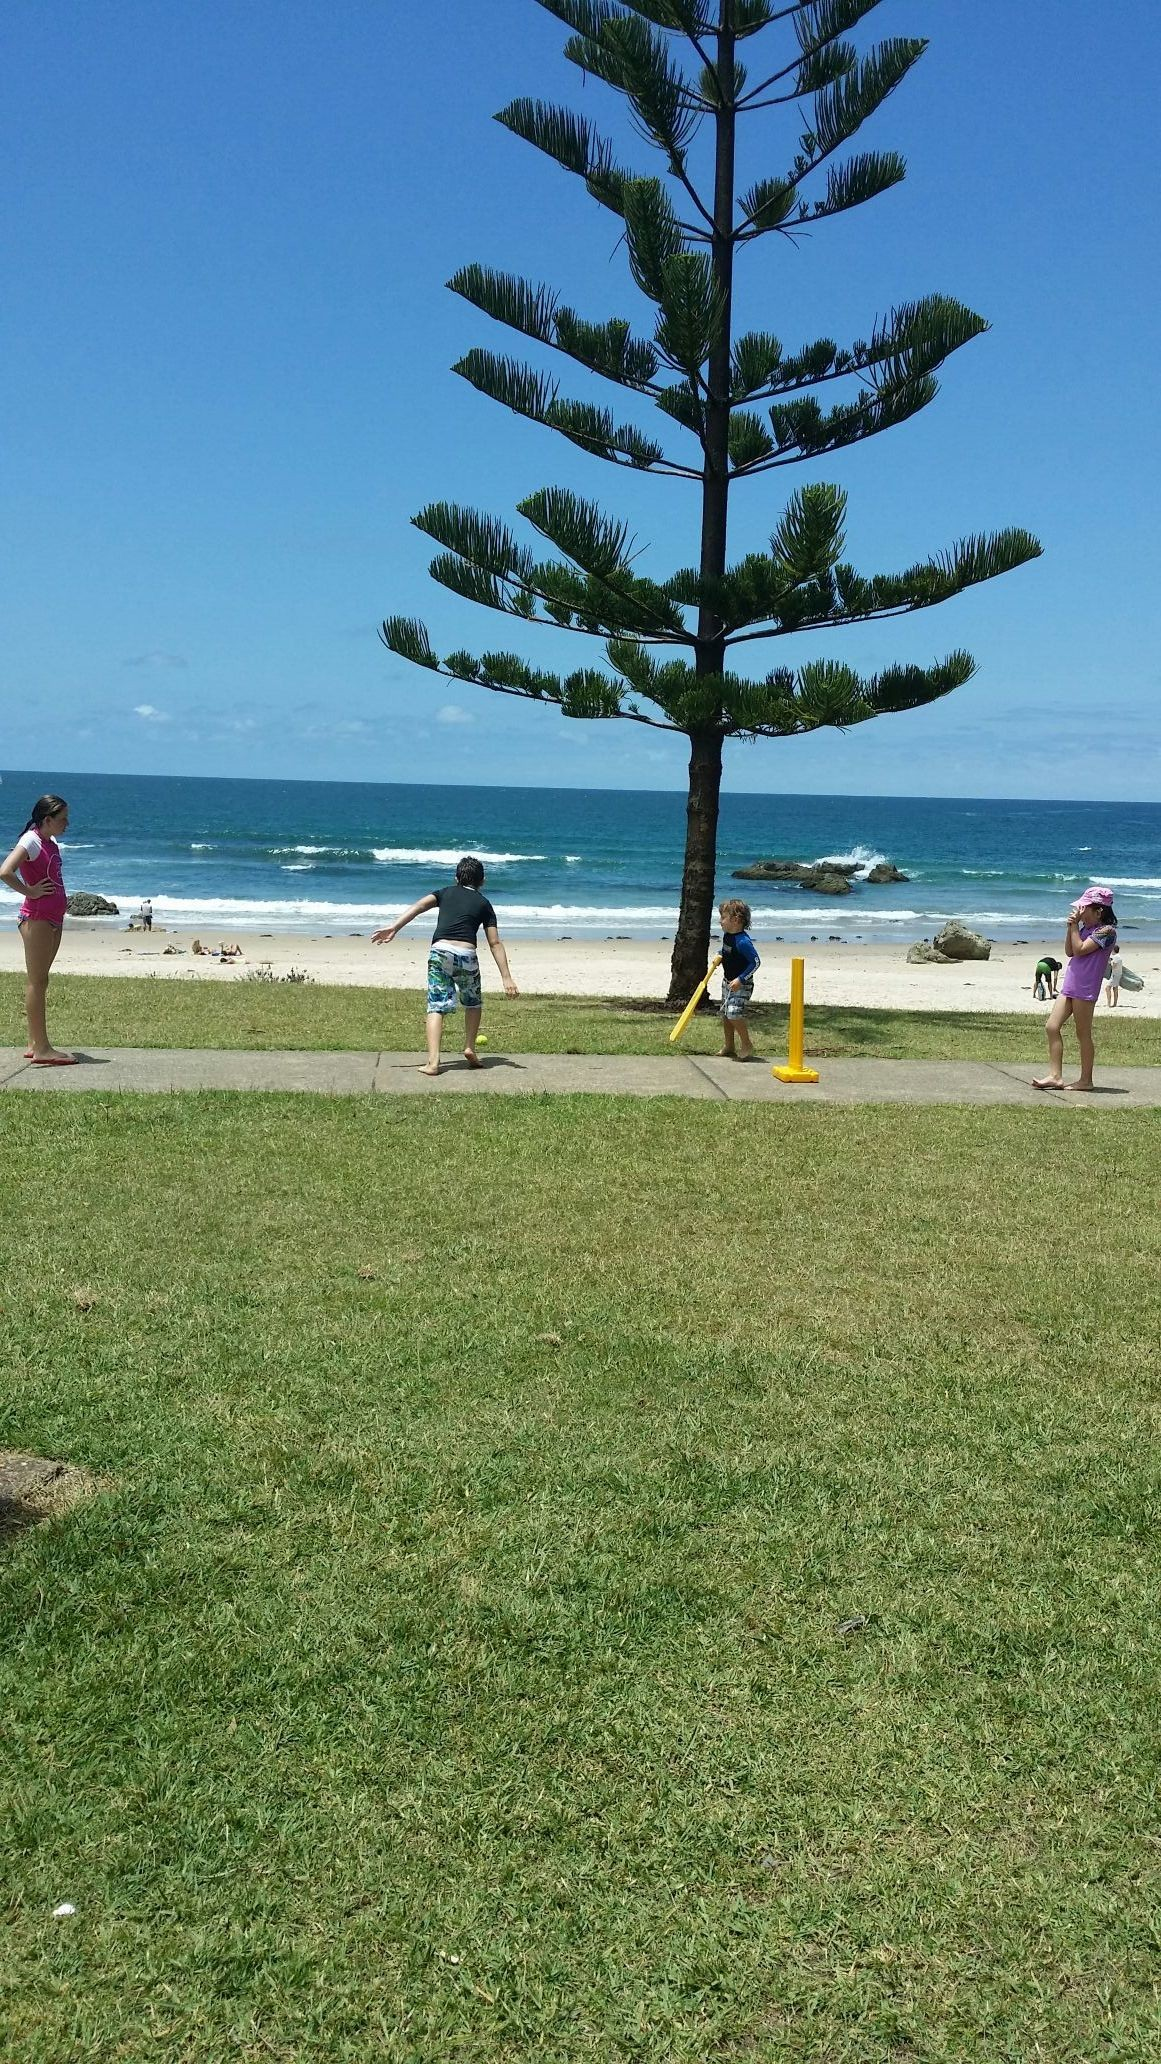 Had a lovely day down the beach playing cricket..having a bbq n a surf with the kids..what a awesome place 2 grow up :)